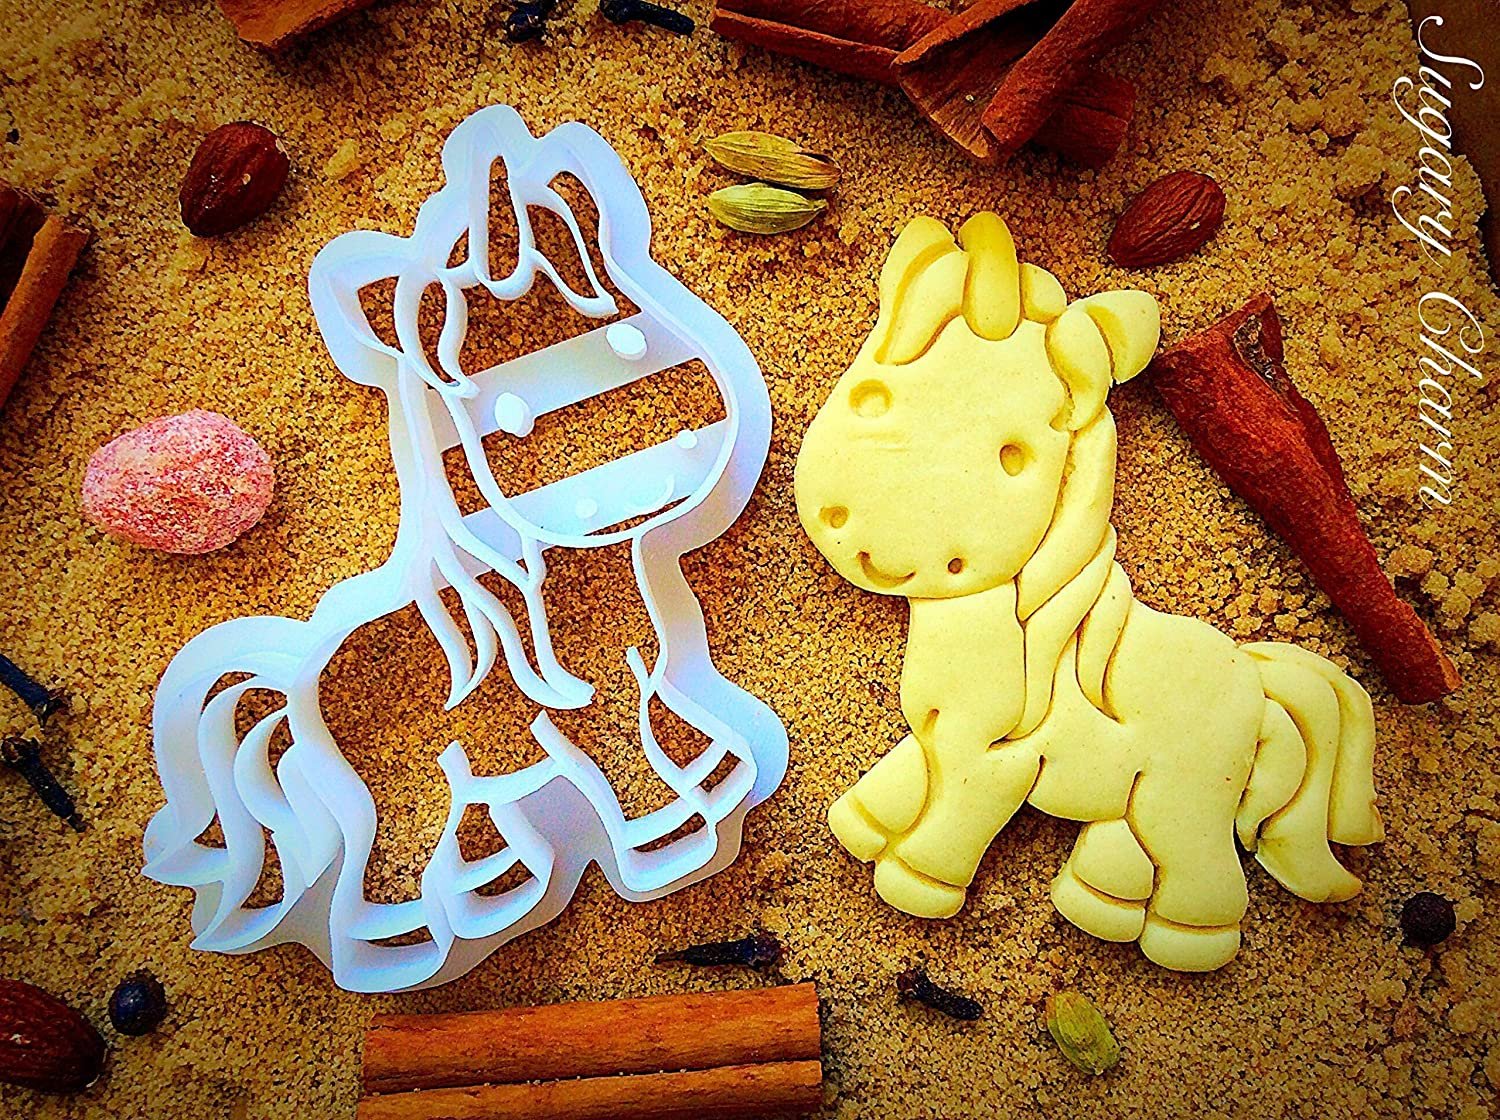 Unicorn Cookie Cutter - Unique Princess Cookies - Halloween Themed - Birthday Party Favors and Supplies - Ocean Theme Shapes - 3D Bakeware Cutters - Cute Animal Shaped Molds for Kids by Sugary Charm